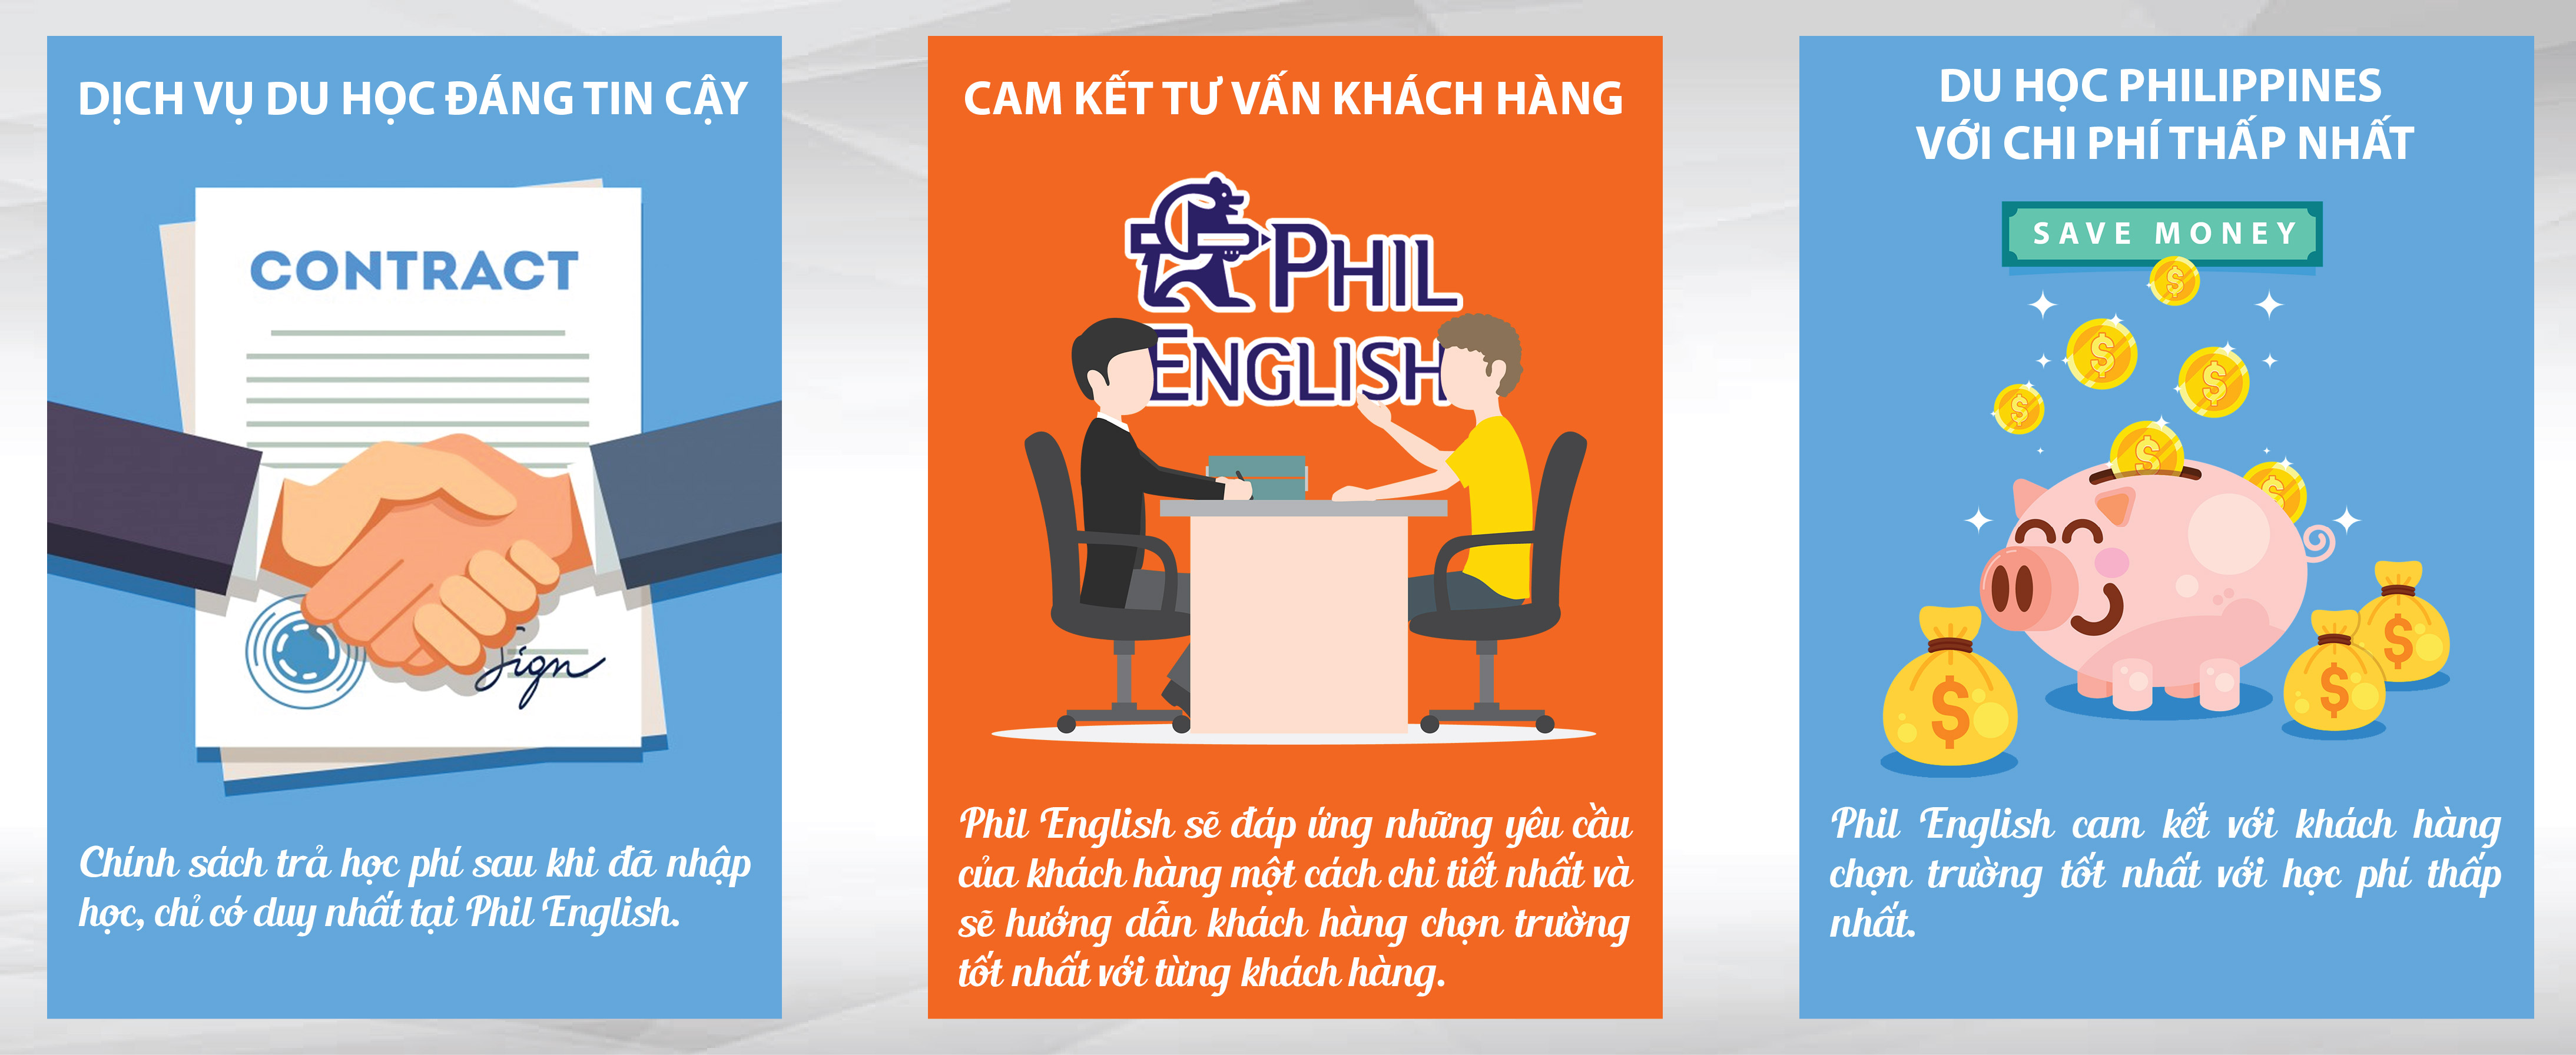 philenglish-study-abroad-content-image